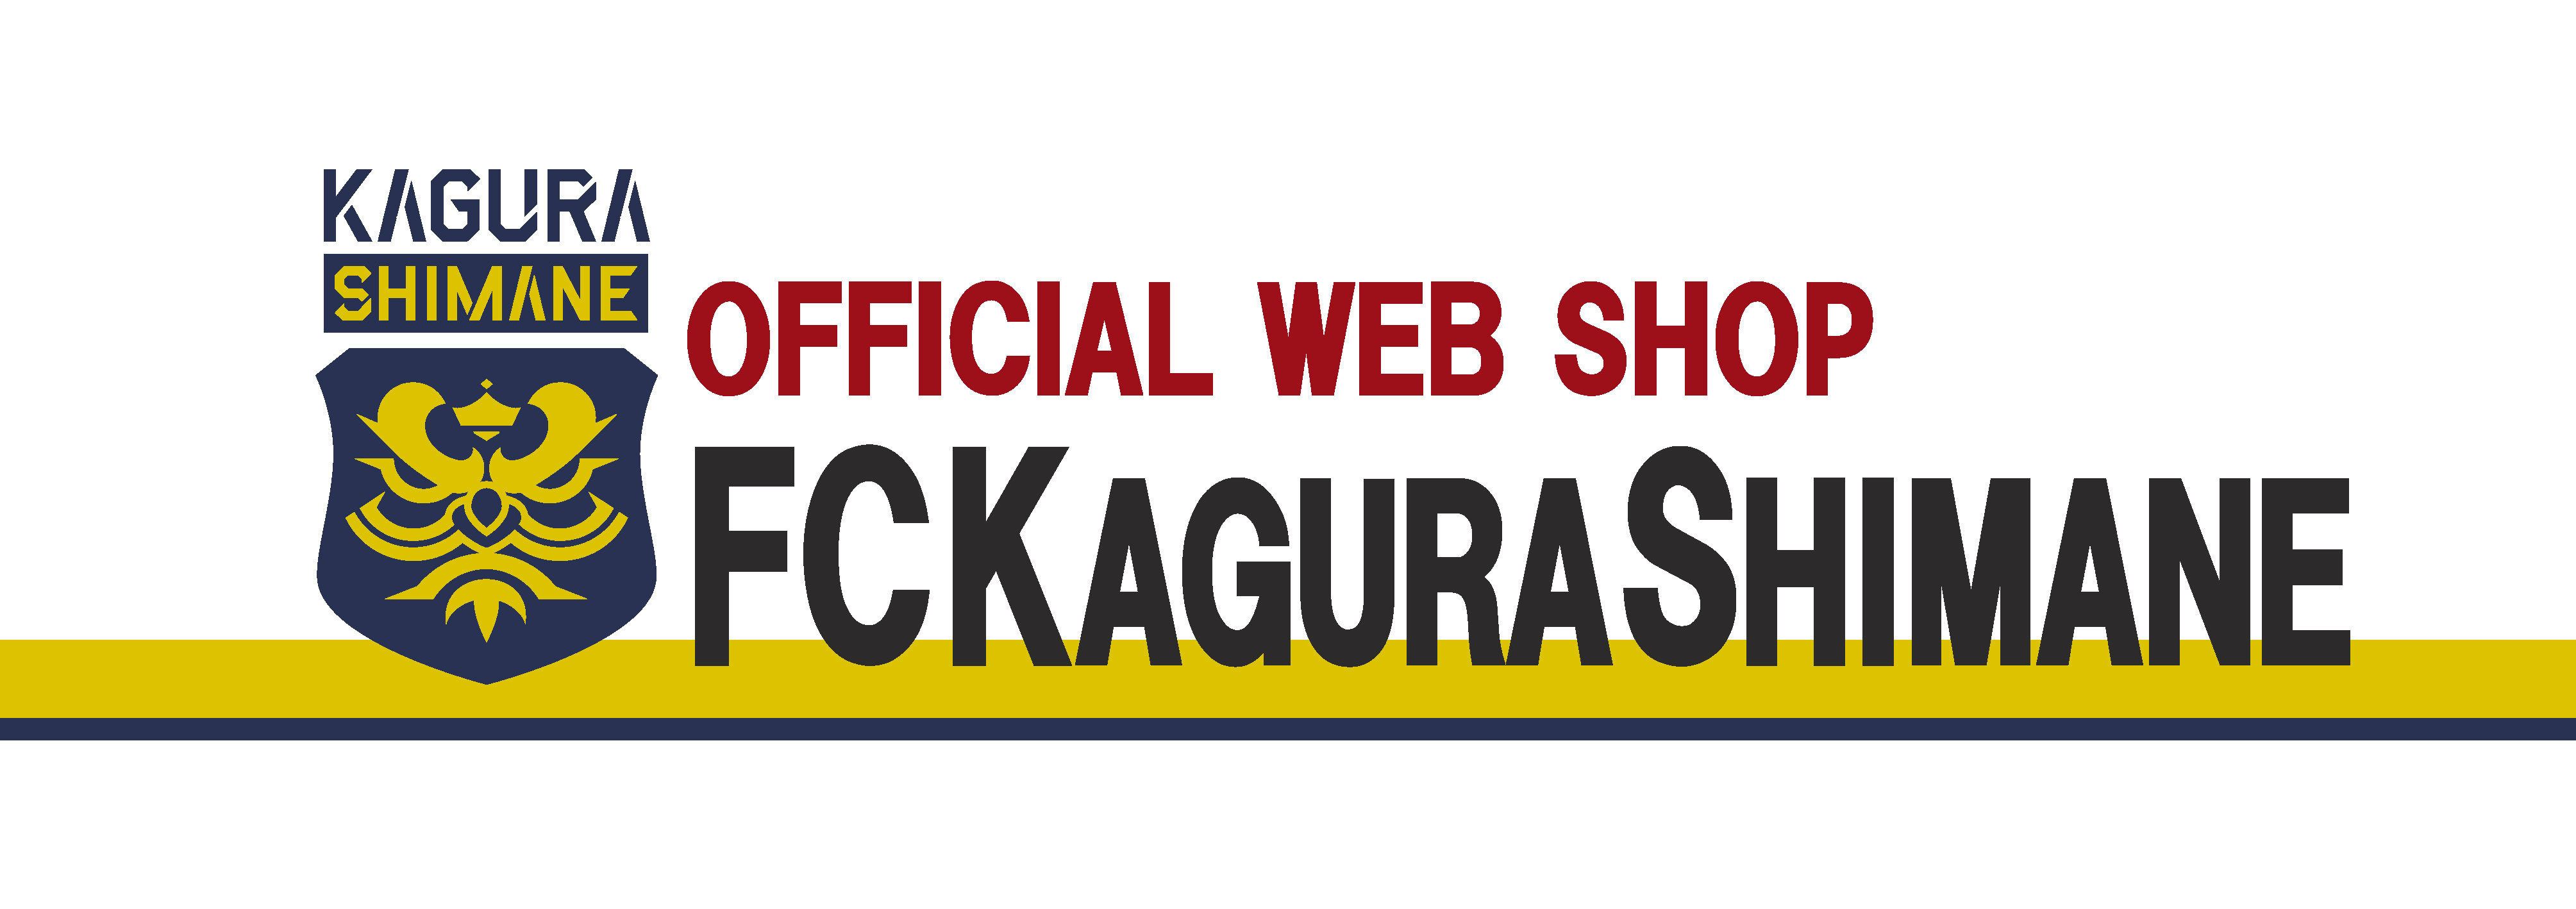 松江シティFC OFFICIAL WEB SHOP